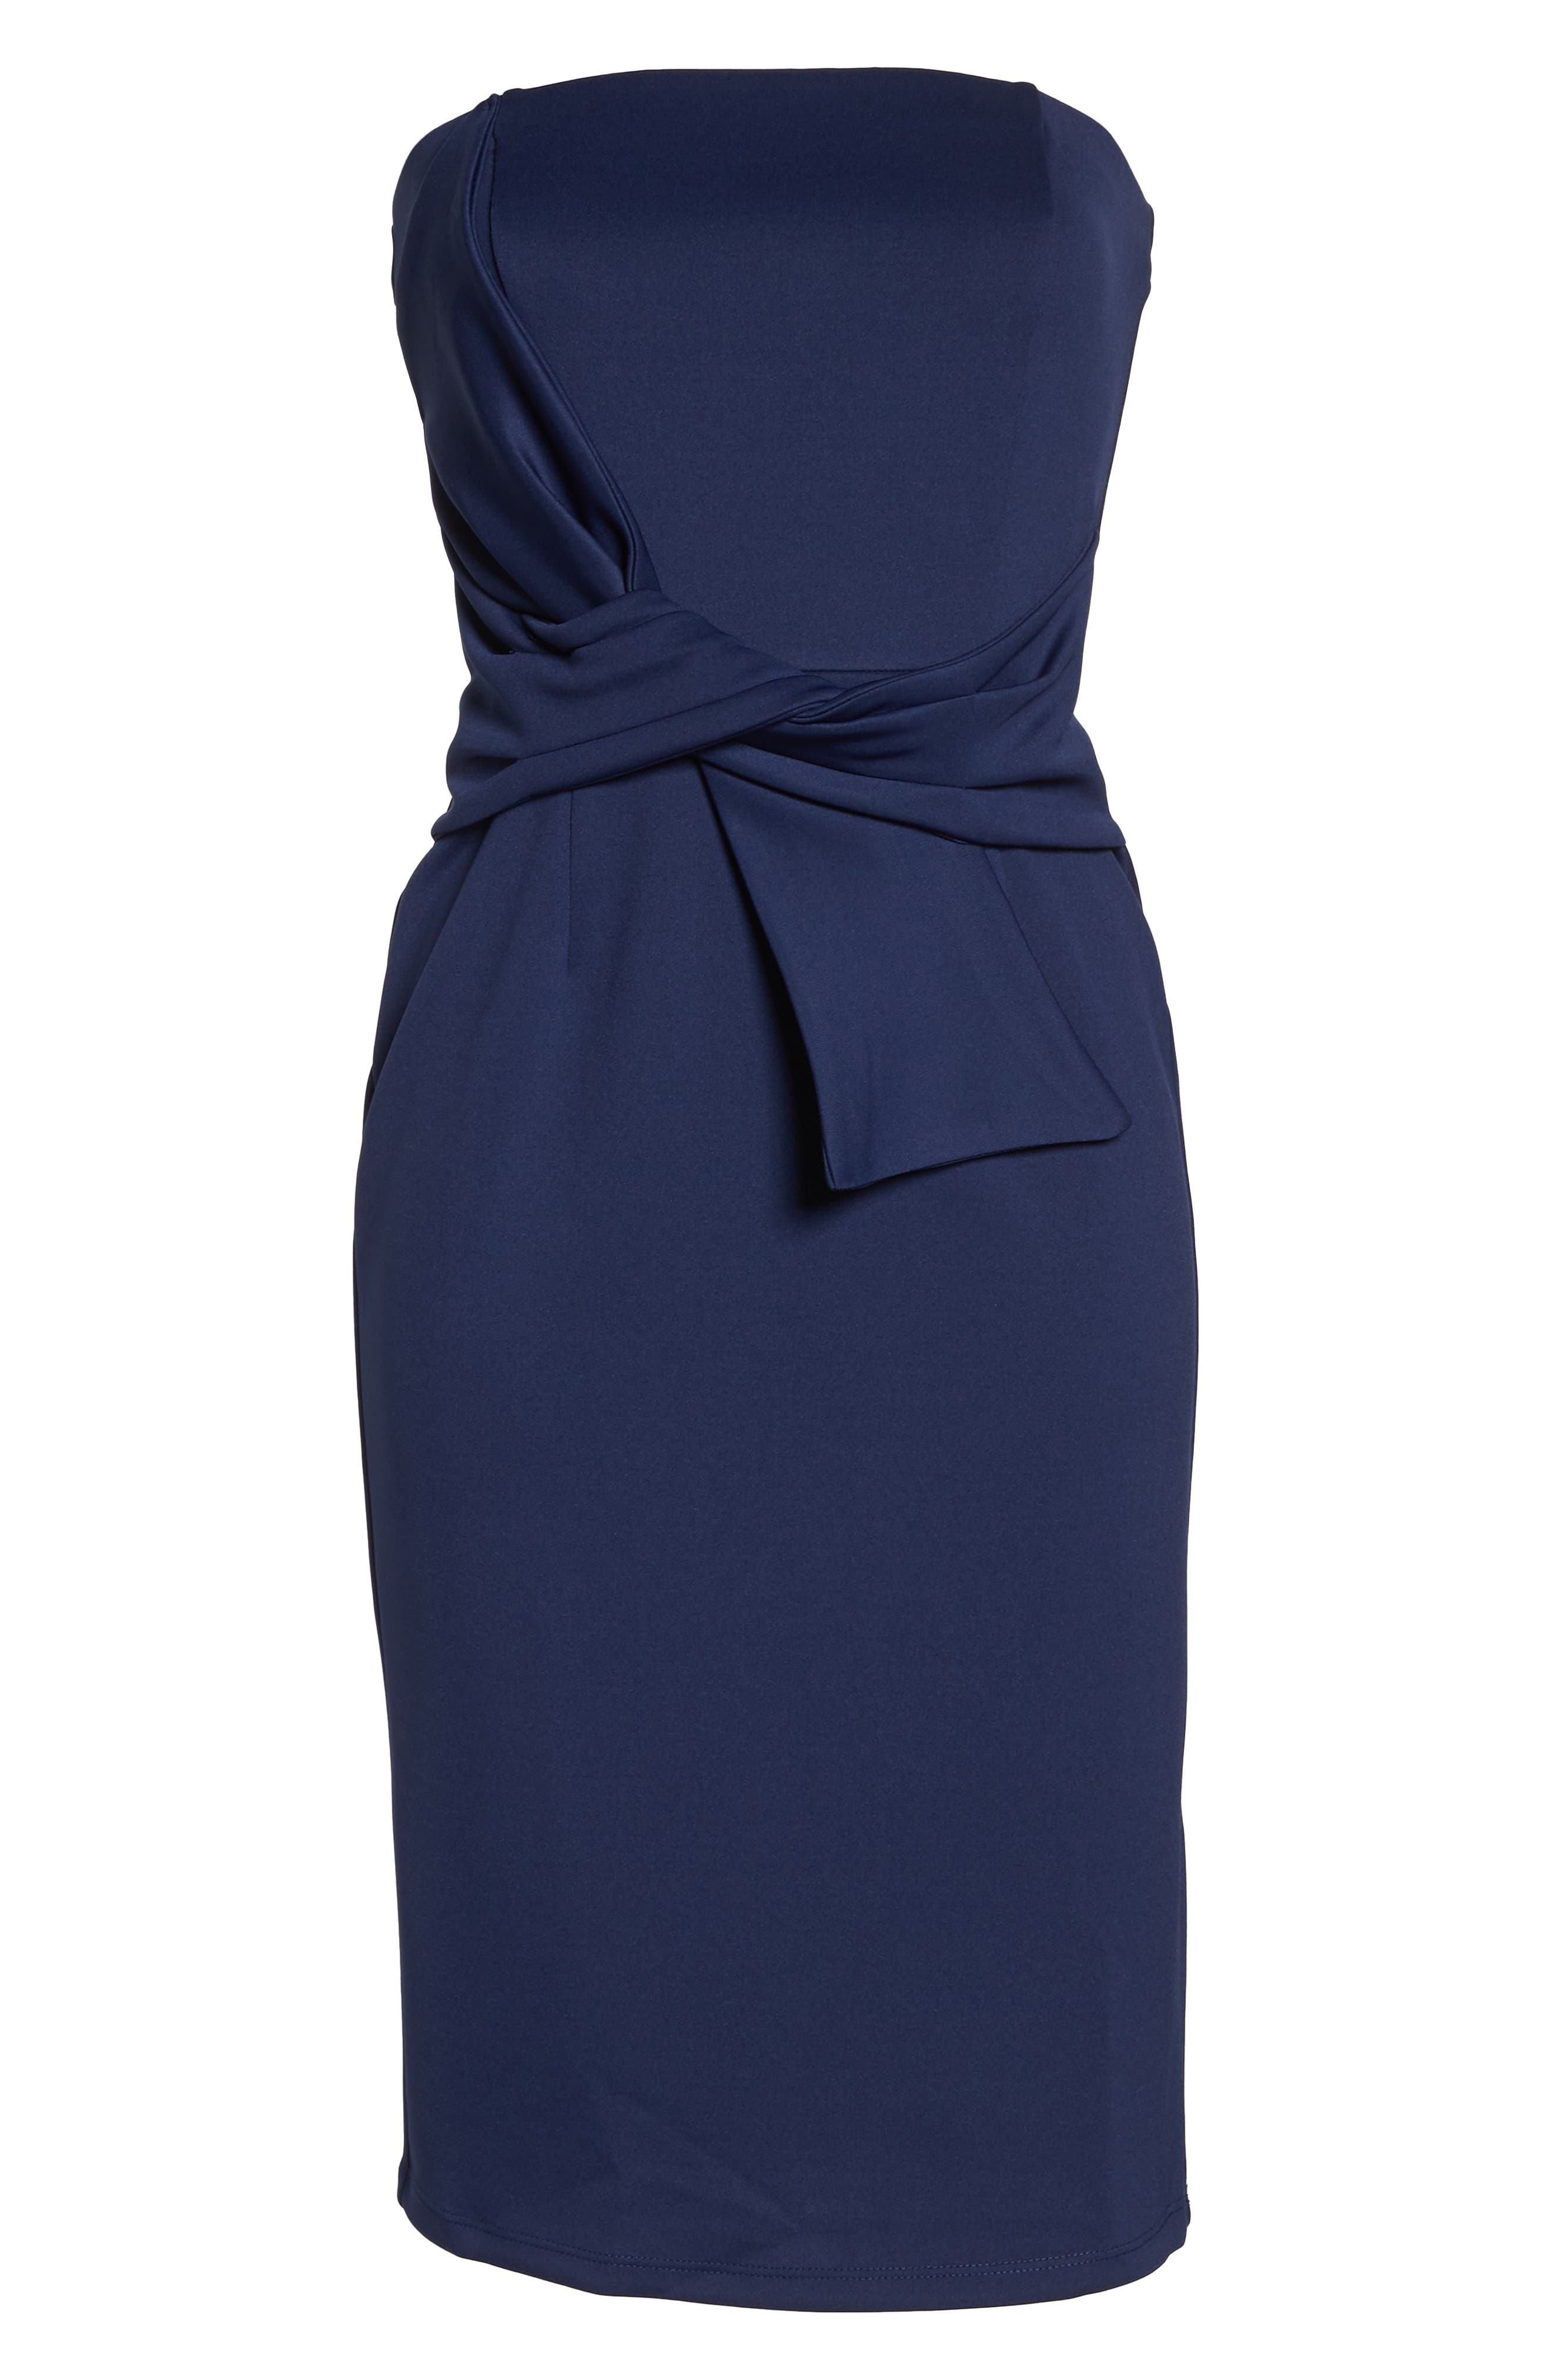 Strapless Tie Front Sheath Dress,                             Alternate thumbnail 7, color,                             401